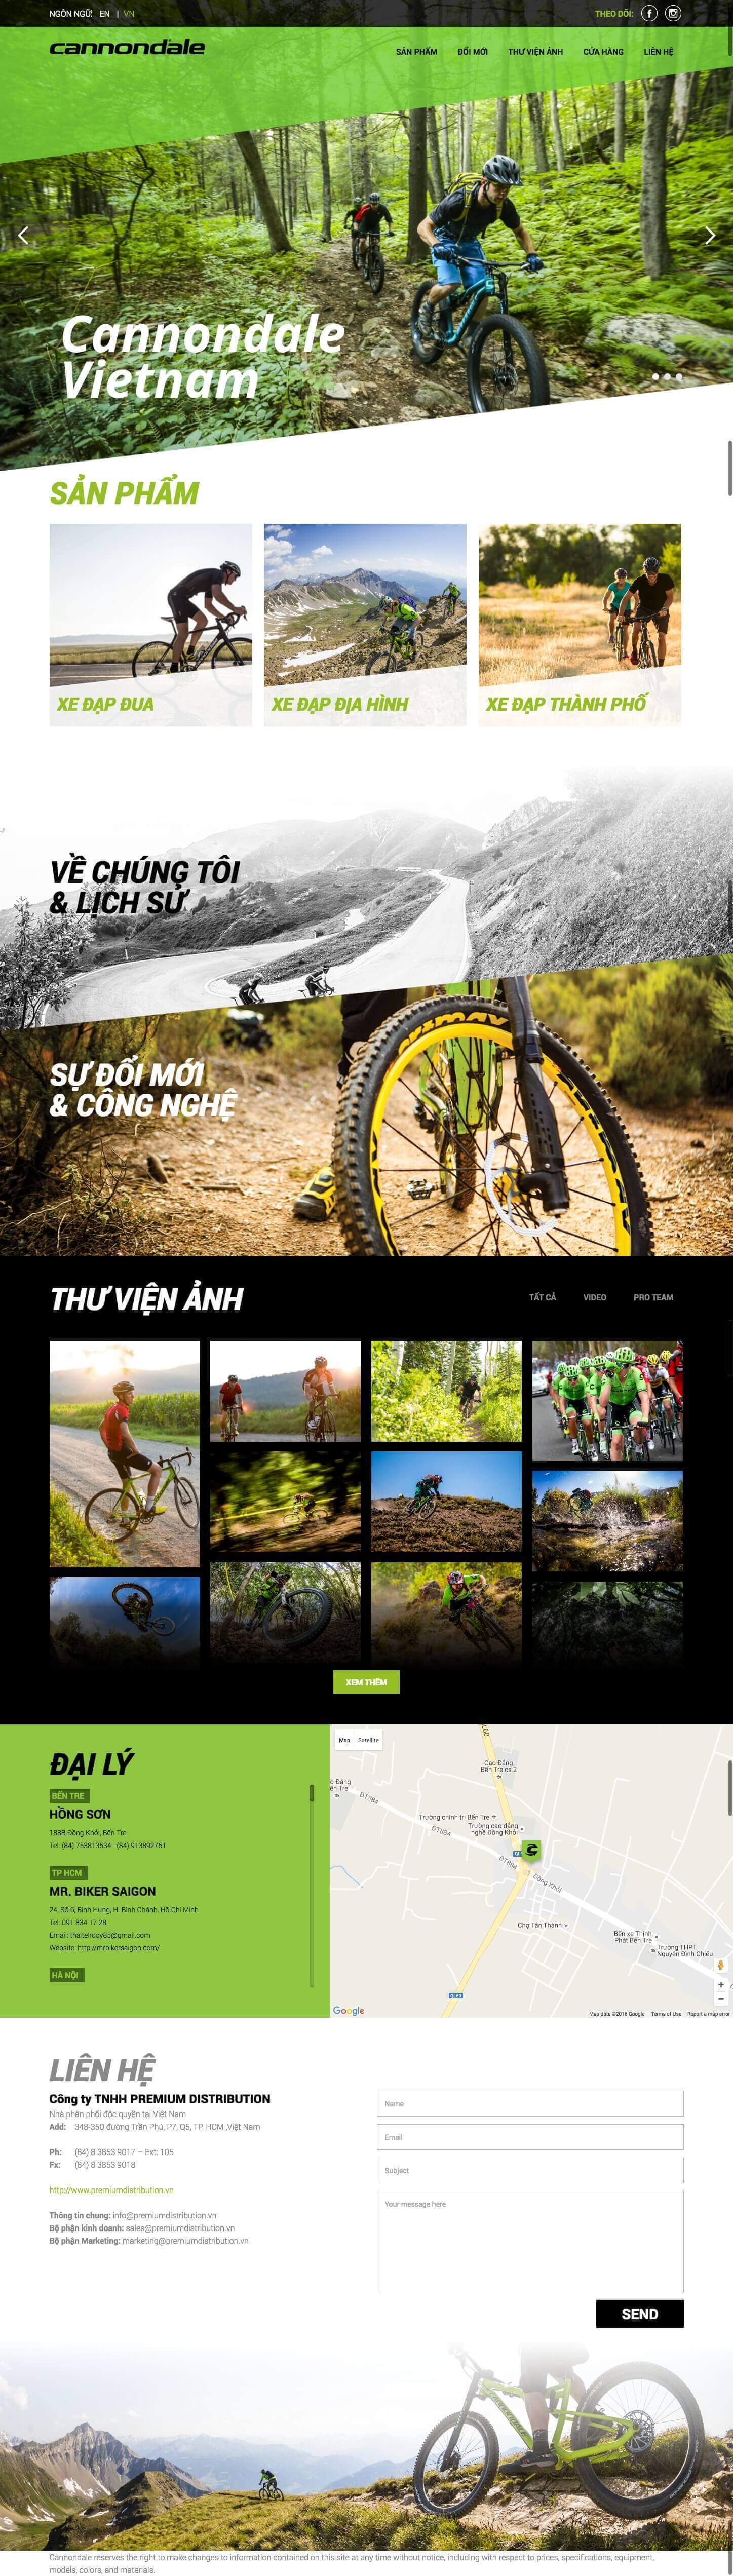 Cannondale Việt Nam